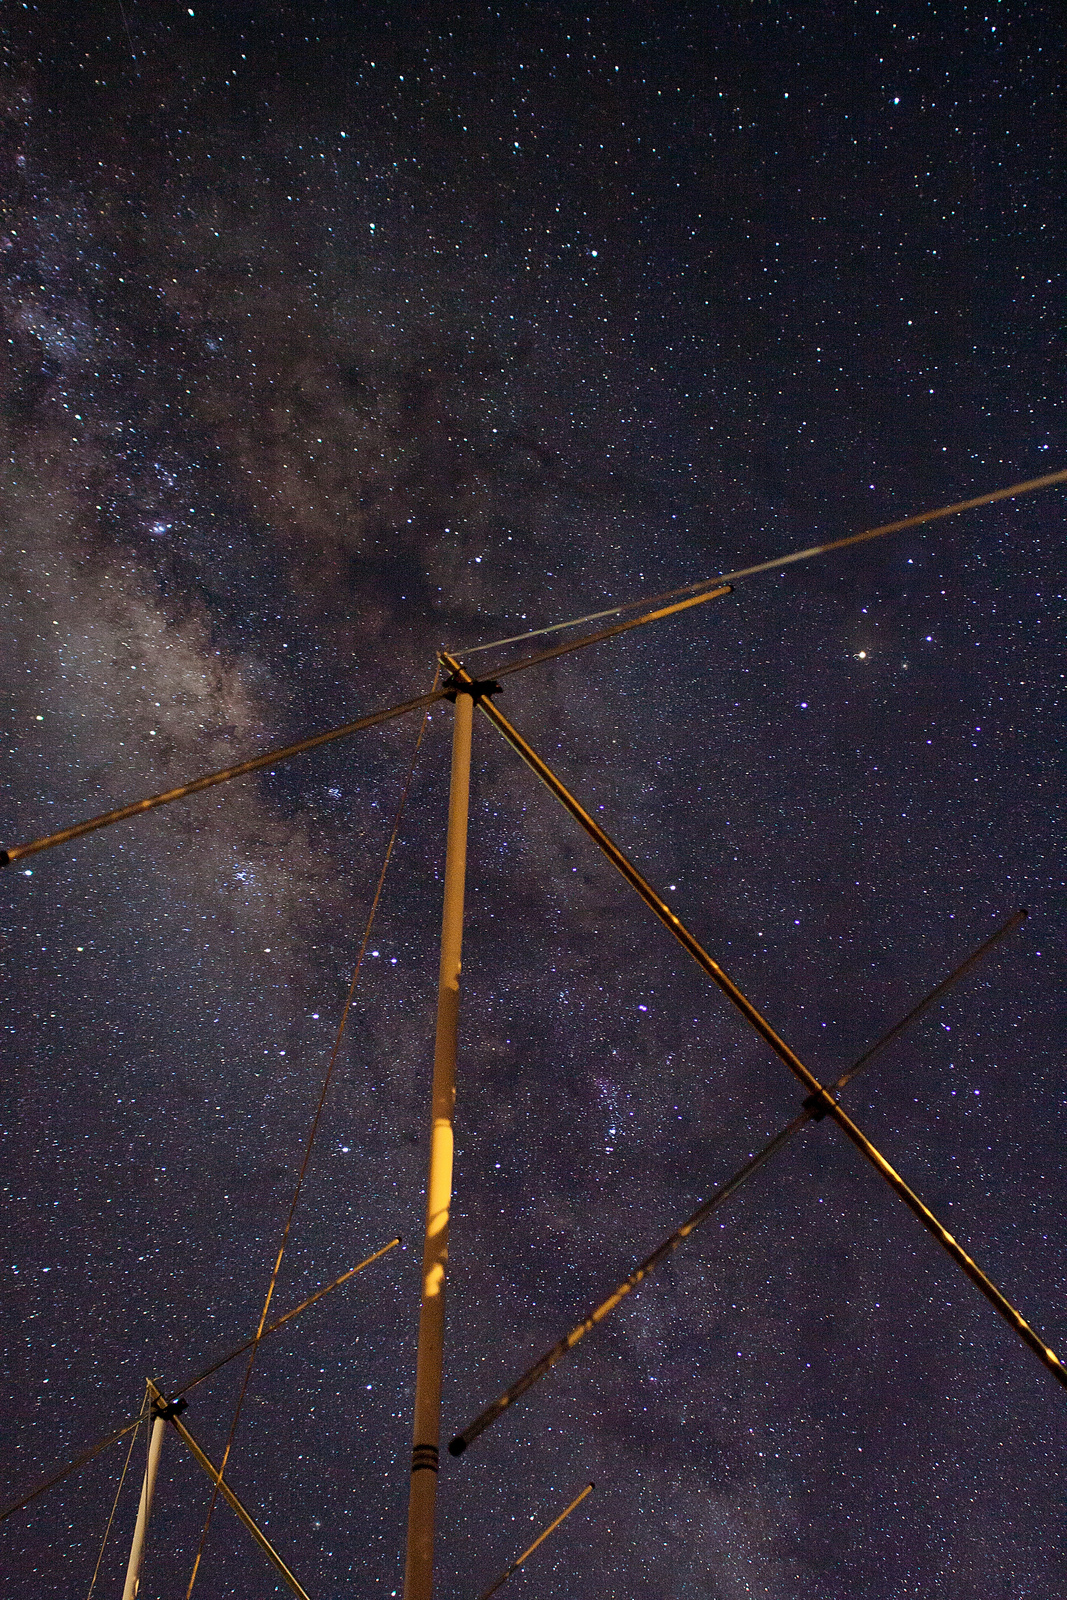 Milky Way and the Antenna3